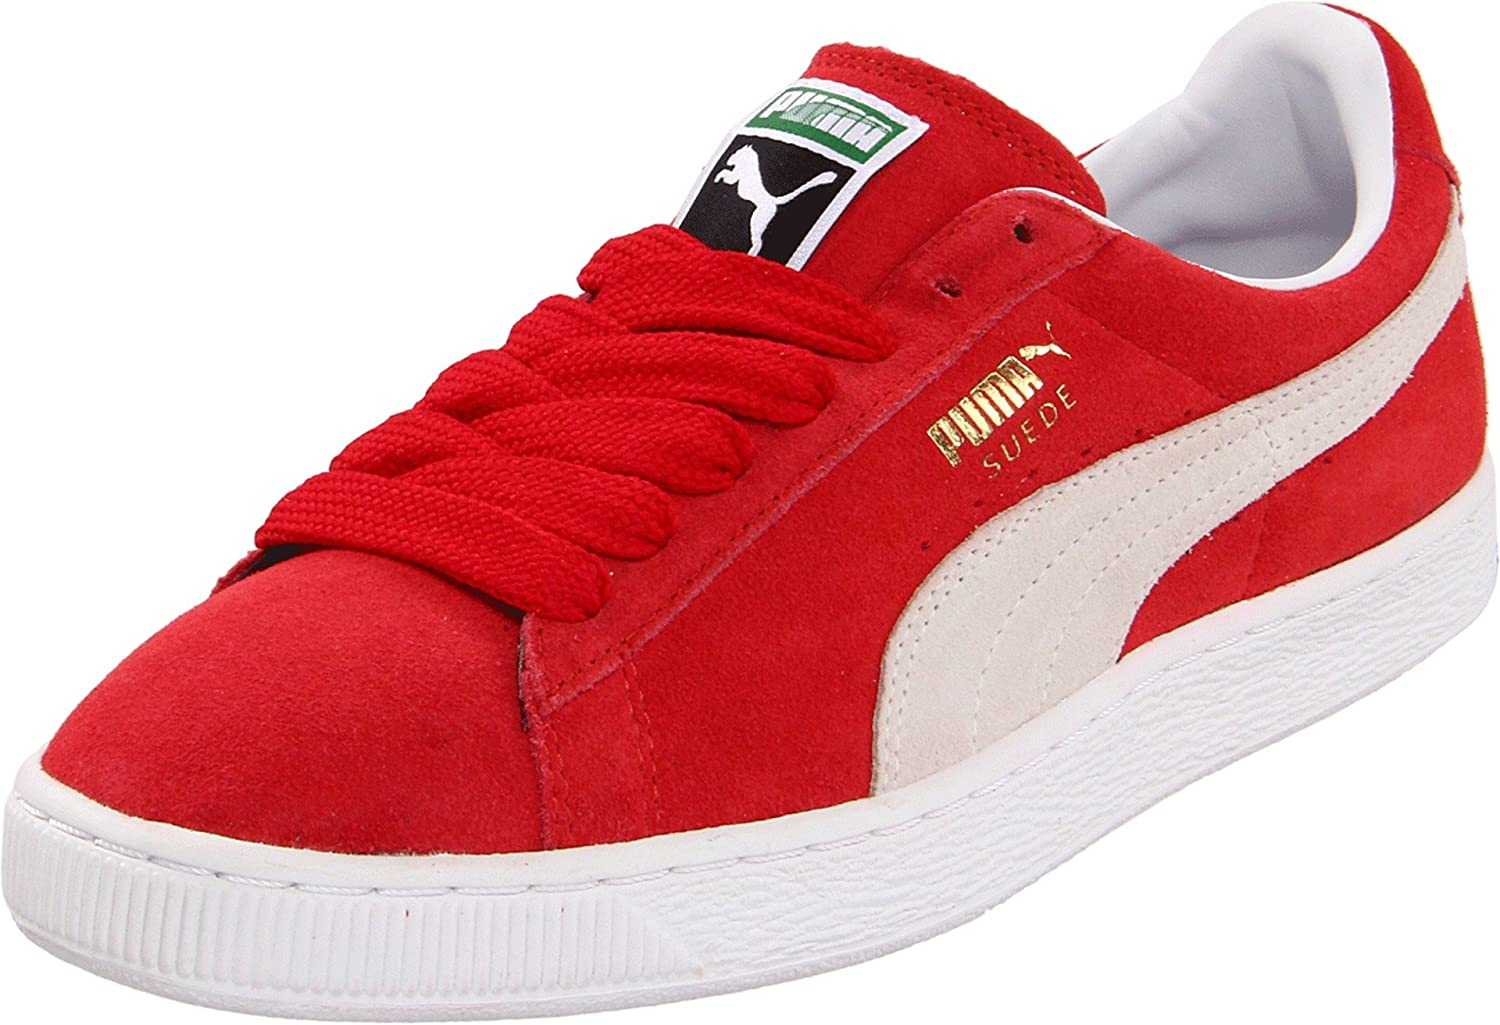 PUMA Adult Suede Classic Shoe B0058XIF60 9 M US|Team Regal Red/White